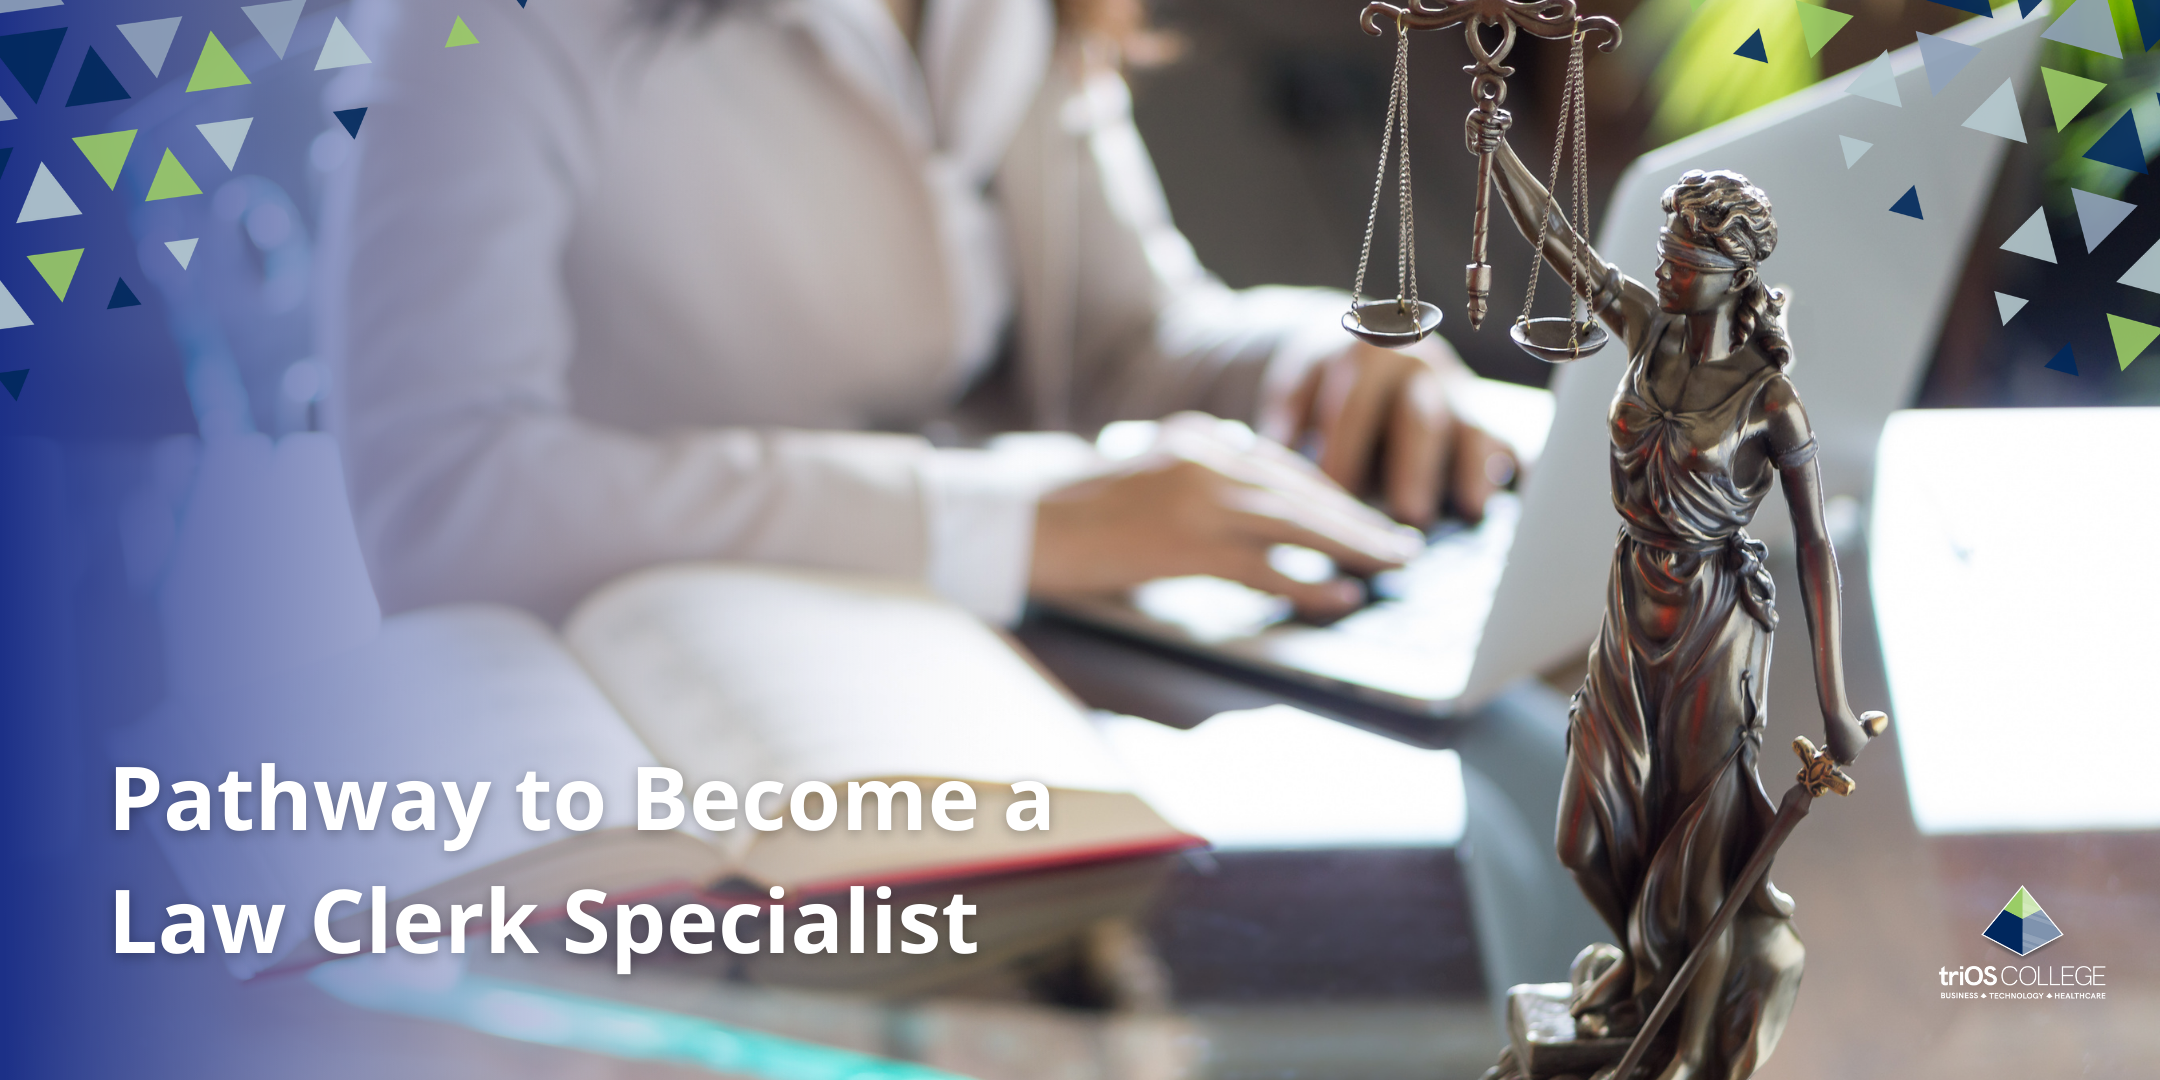 Pathway to Become a Law Clerk Specialist featured image